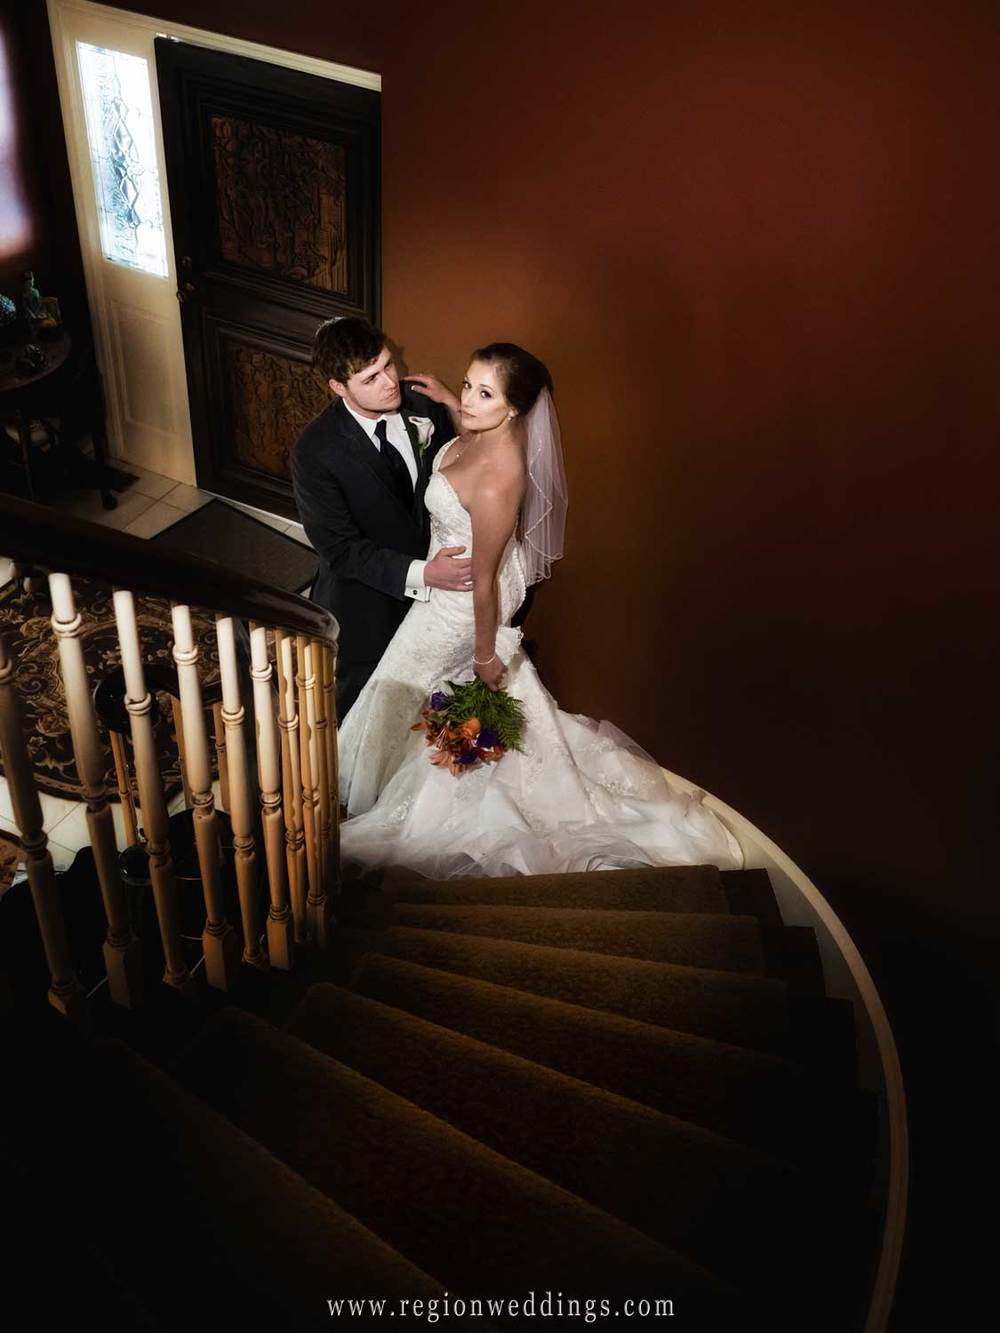 The bride and groom embrace at the bottom of a staircase.